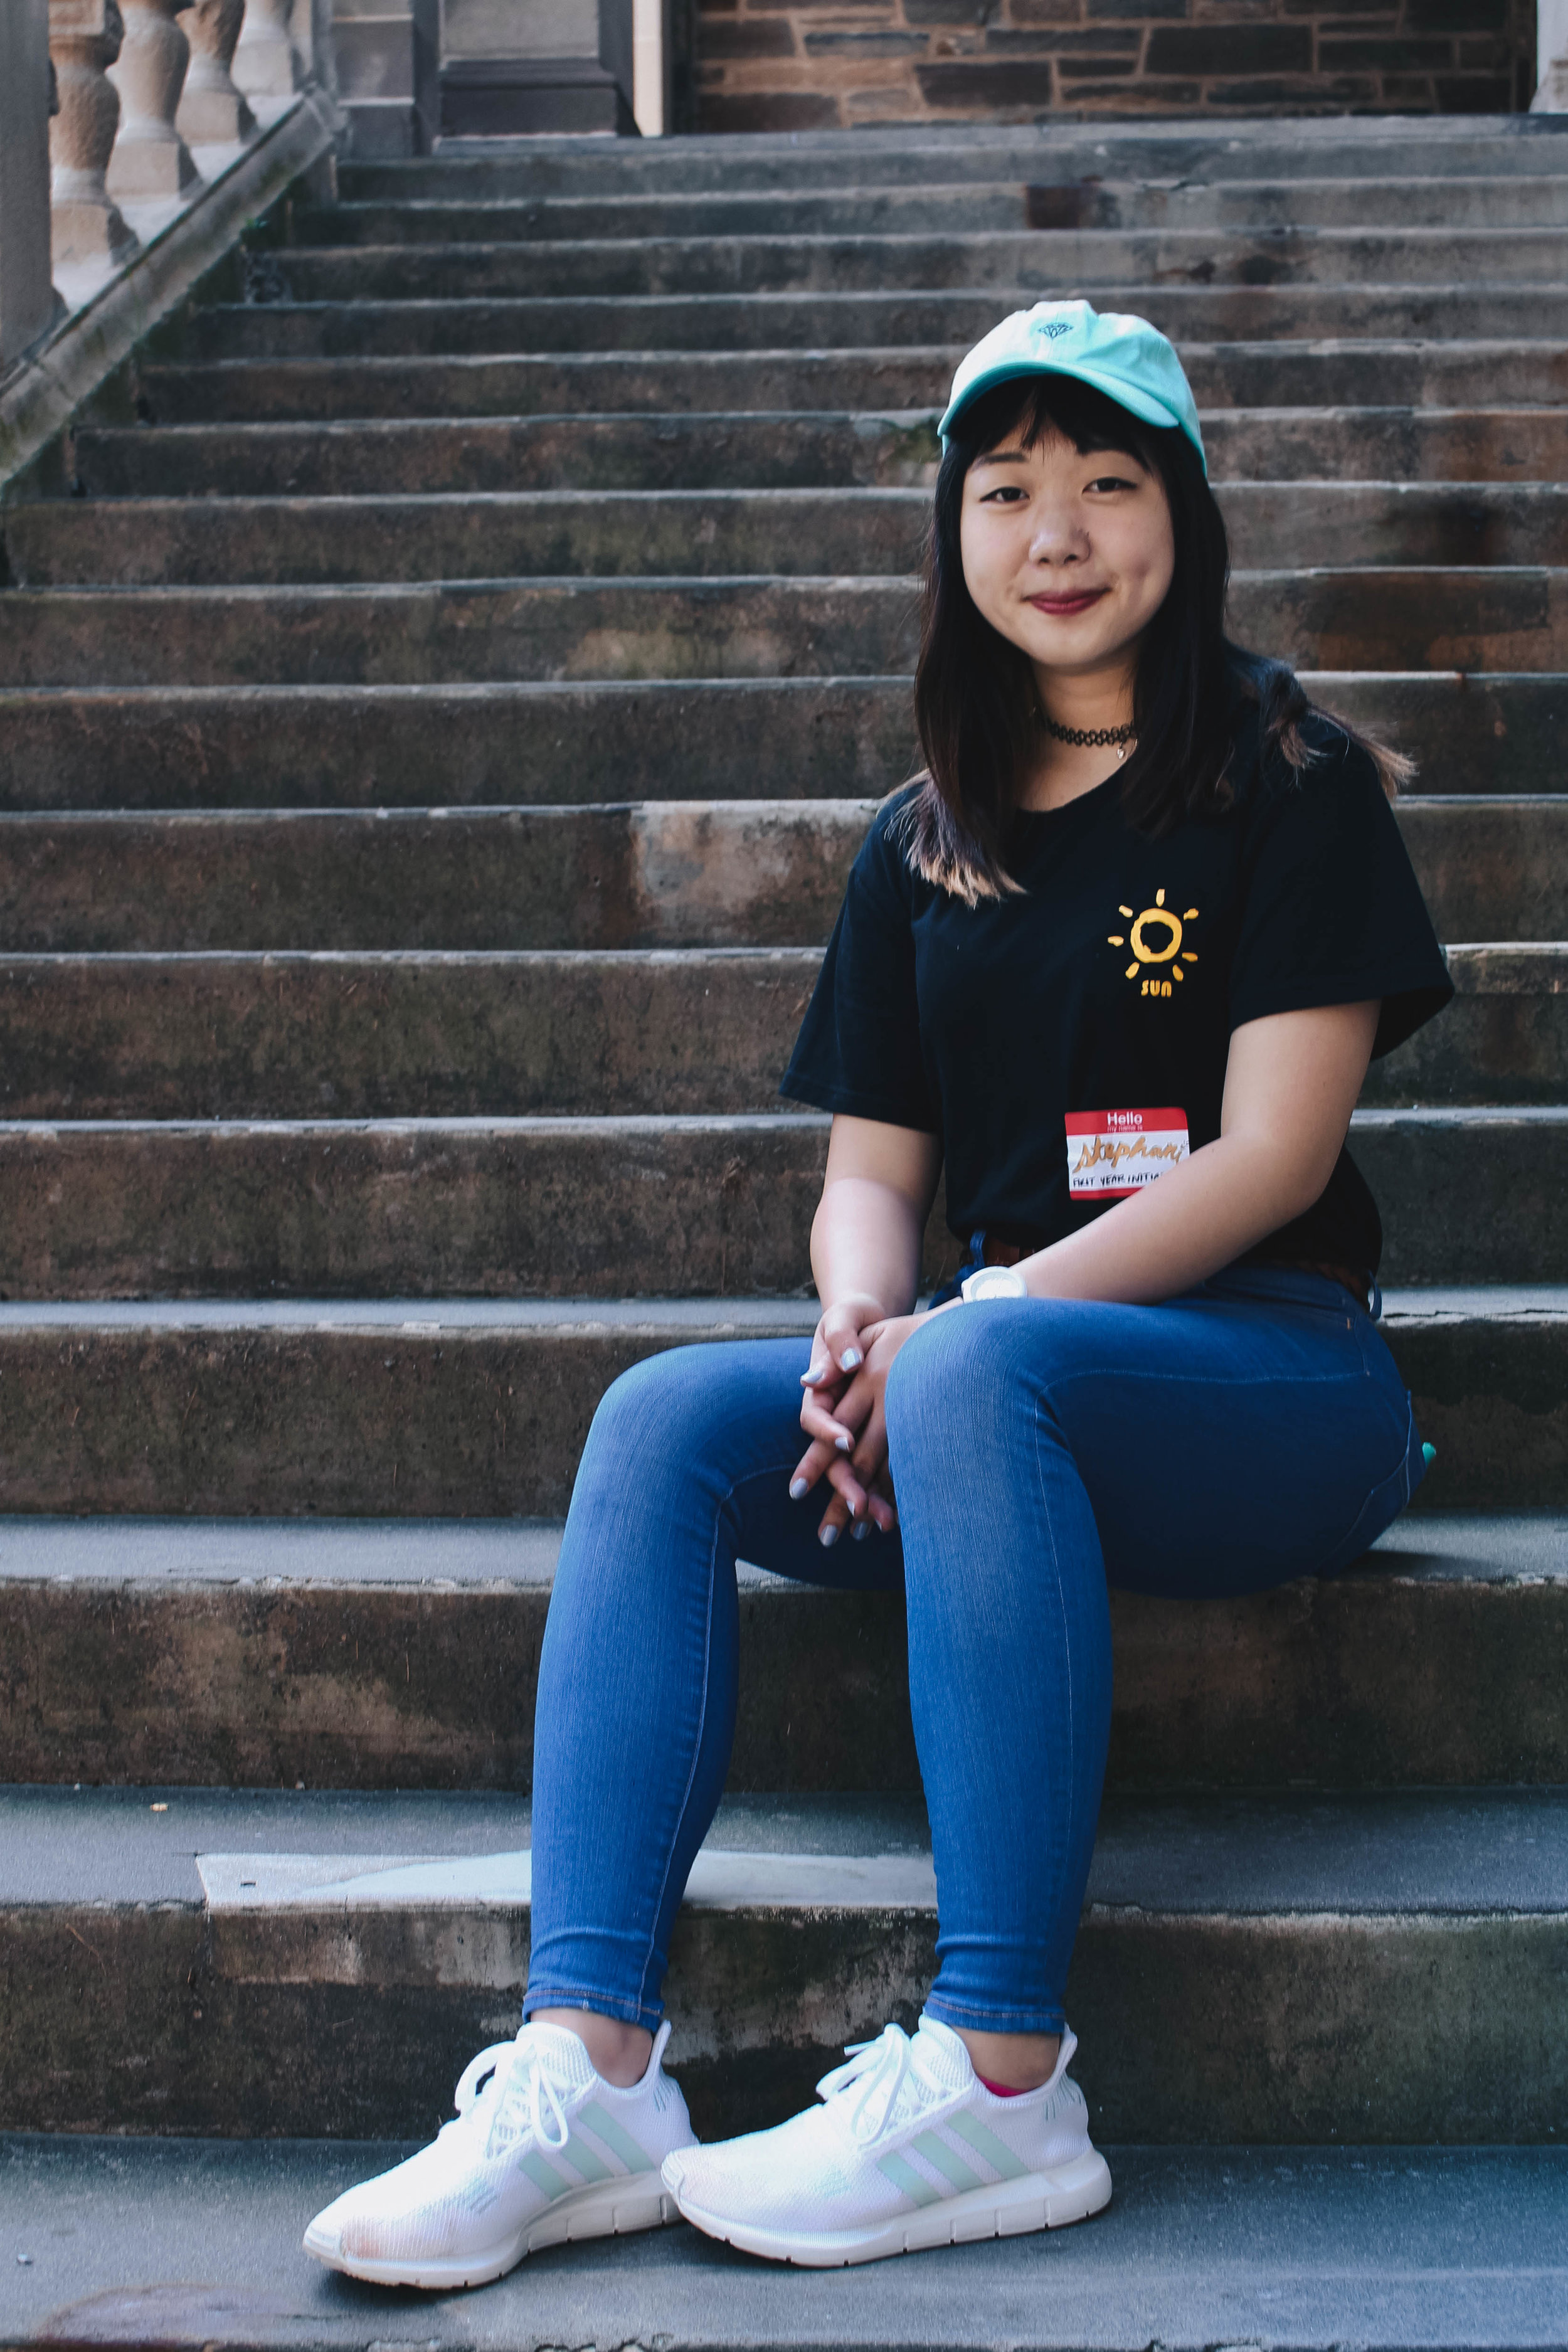 Stephanie Lin   Vice Facilitator    Year : Senior, 2019  Major : Atmospheric Sciences  Other Involvements : Cornell Taiwanese American Society, alpha Kappa Delta Phi, Bowling Club, Phenomenon Step Team, Cornell Chapter of the American Meteorological Society  As Vice Facilitator, Stephanie strives to facilitate more meaningful relationships between organizations and executive boards, as well as helping CAPSU be more accessible to organizations under the umbrella. In her free time, you can find her at the bowling alley or stuck in the 11th floor of Bradfield geeking out about lake-effect snow.